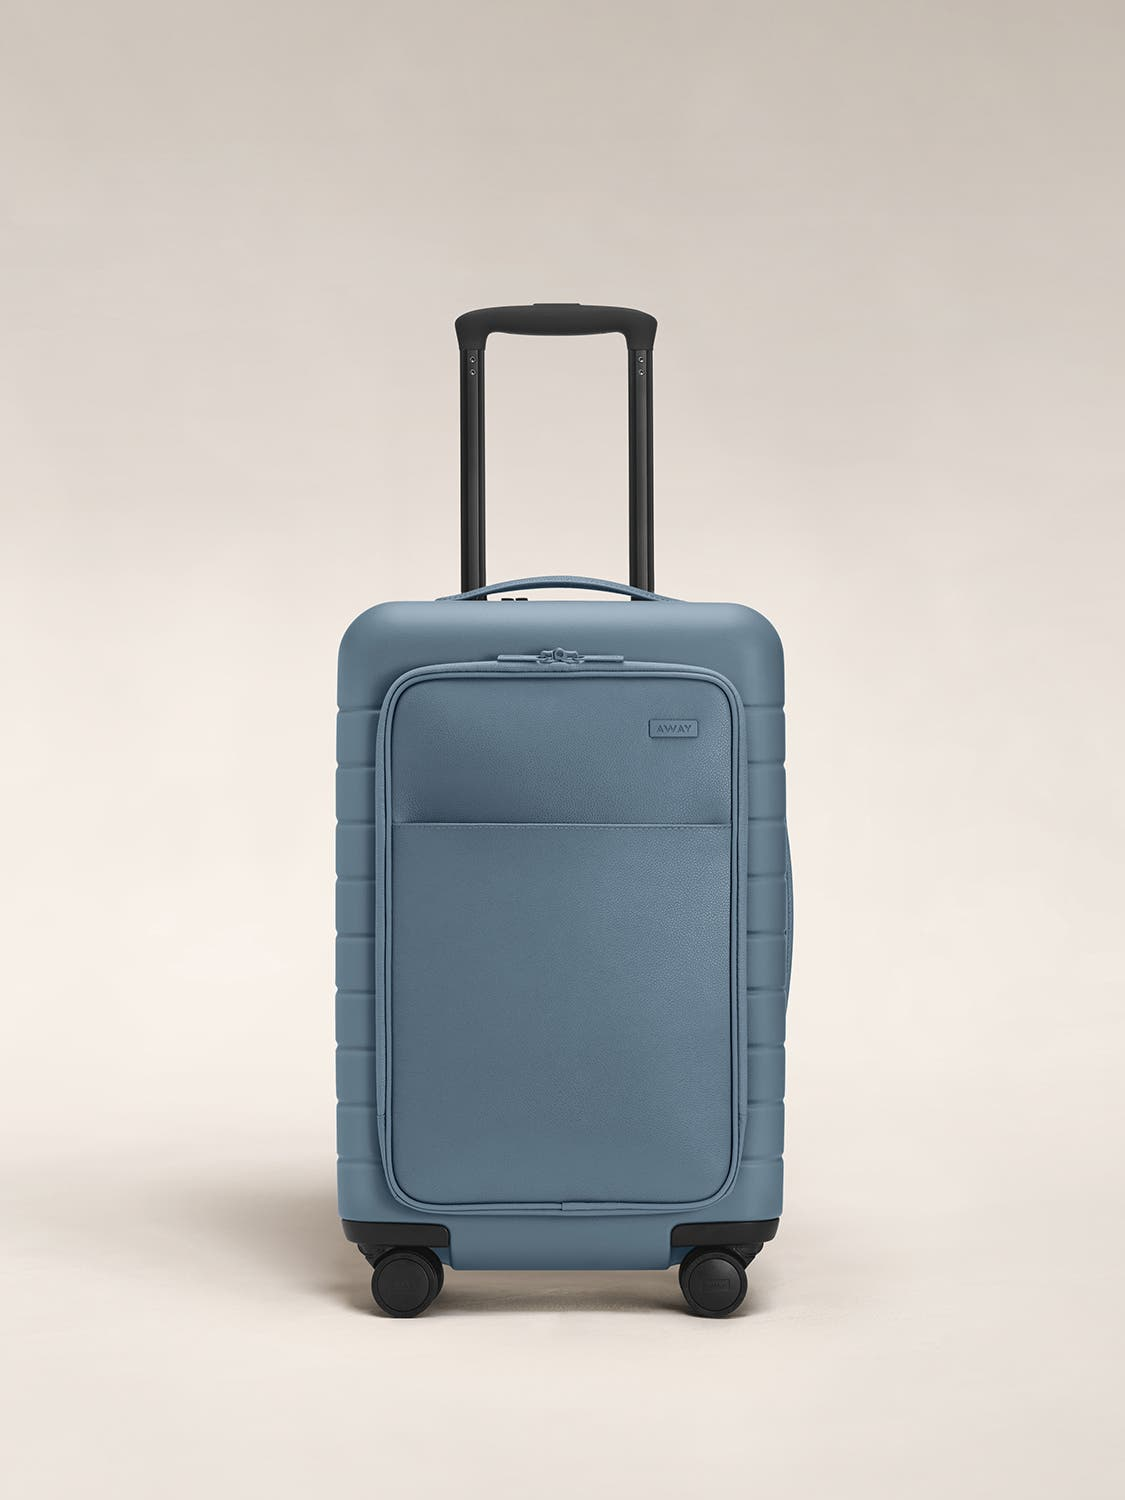 Front view of a coast carry-on suitcase with a hard shell, leather front pocket, and telescopic handle pulled out.